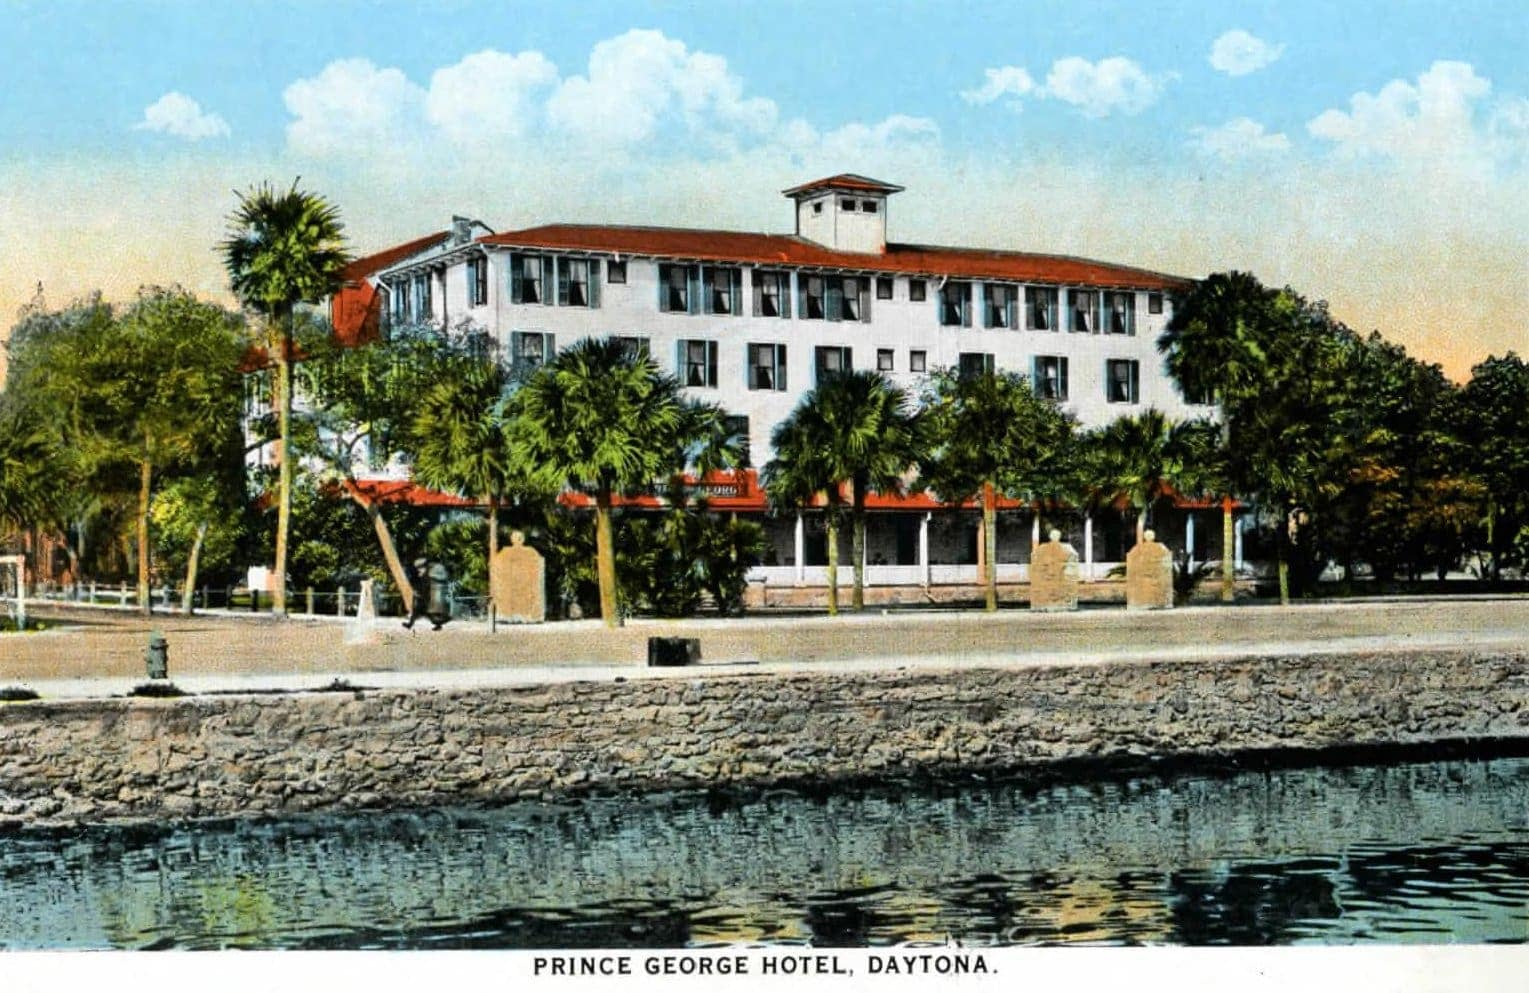 Old Prince George Hotel - Daytona Florida 1917